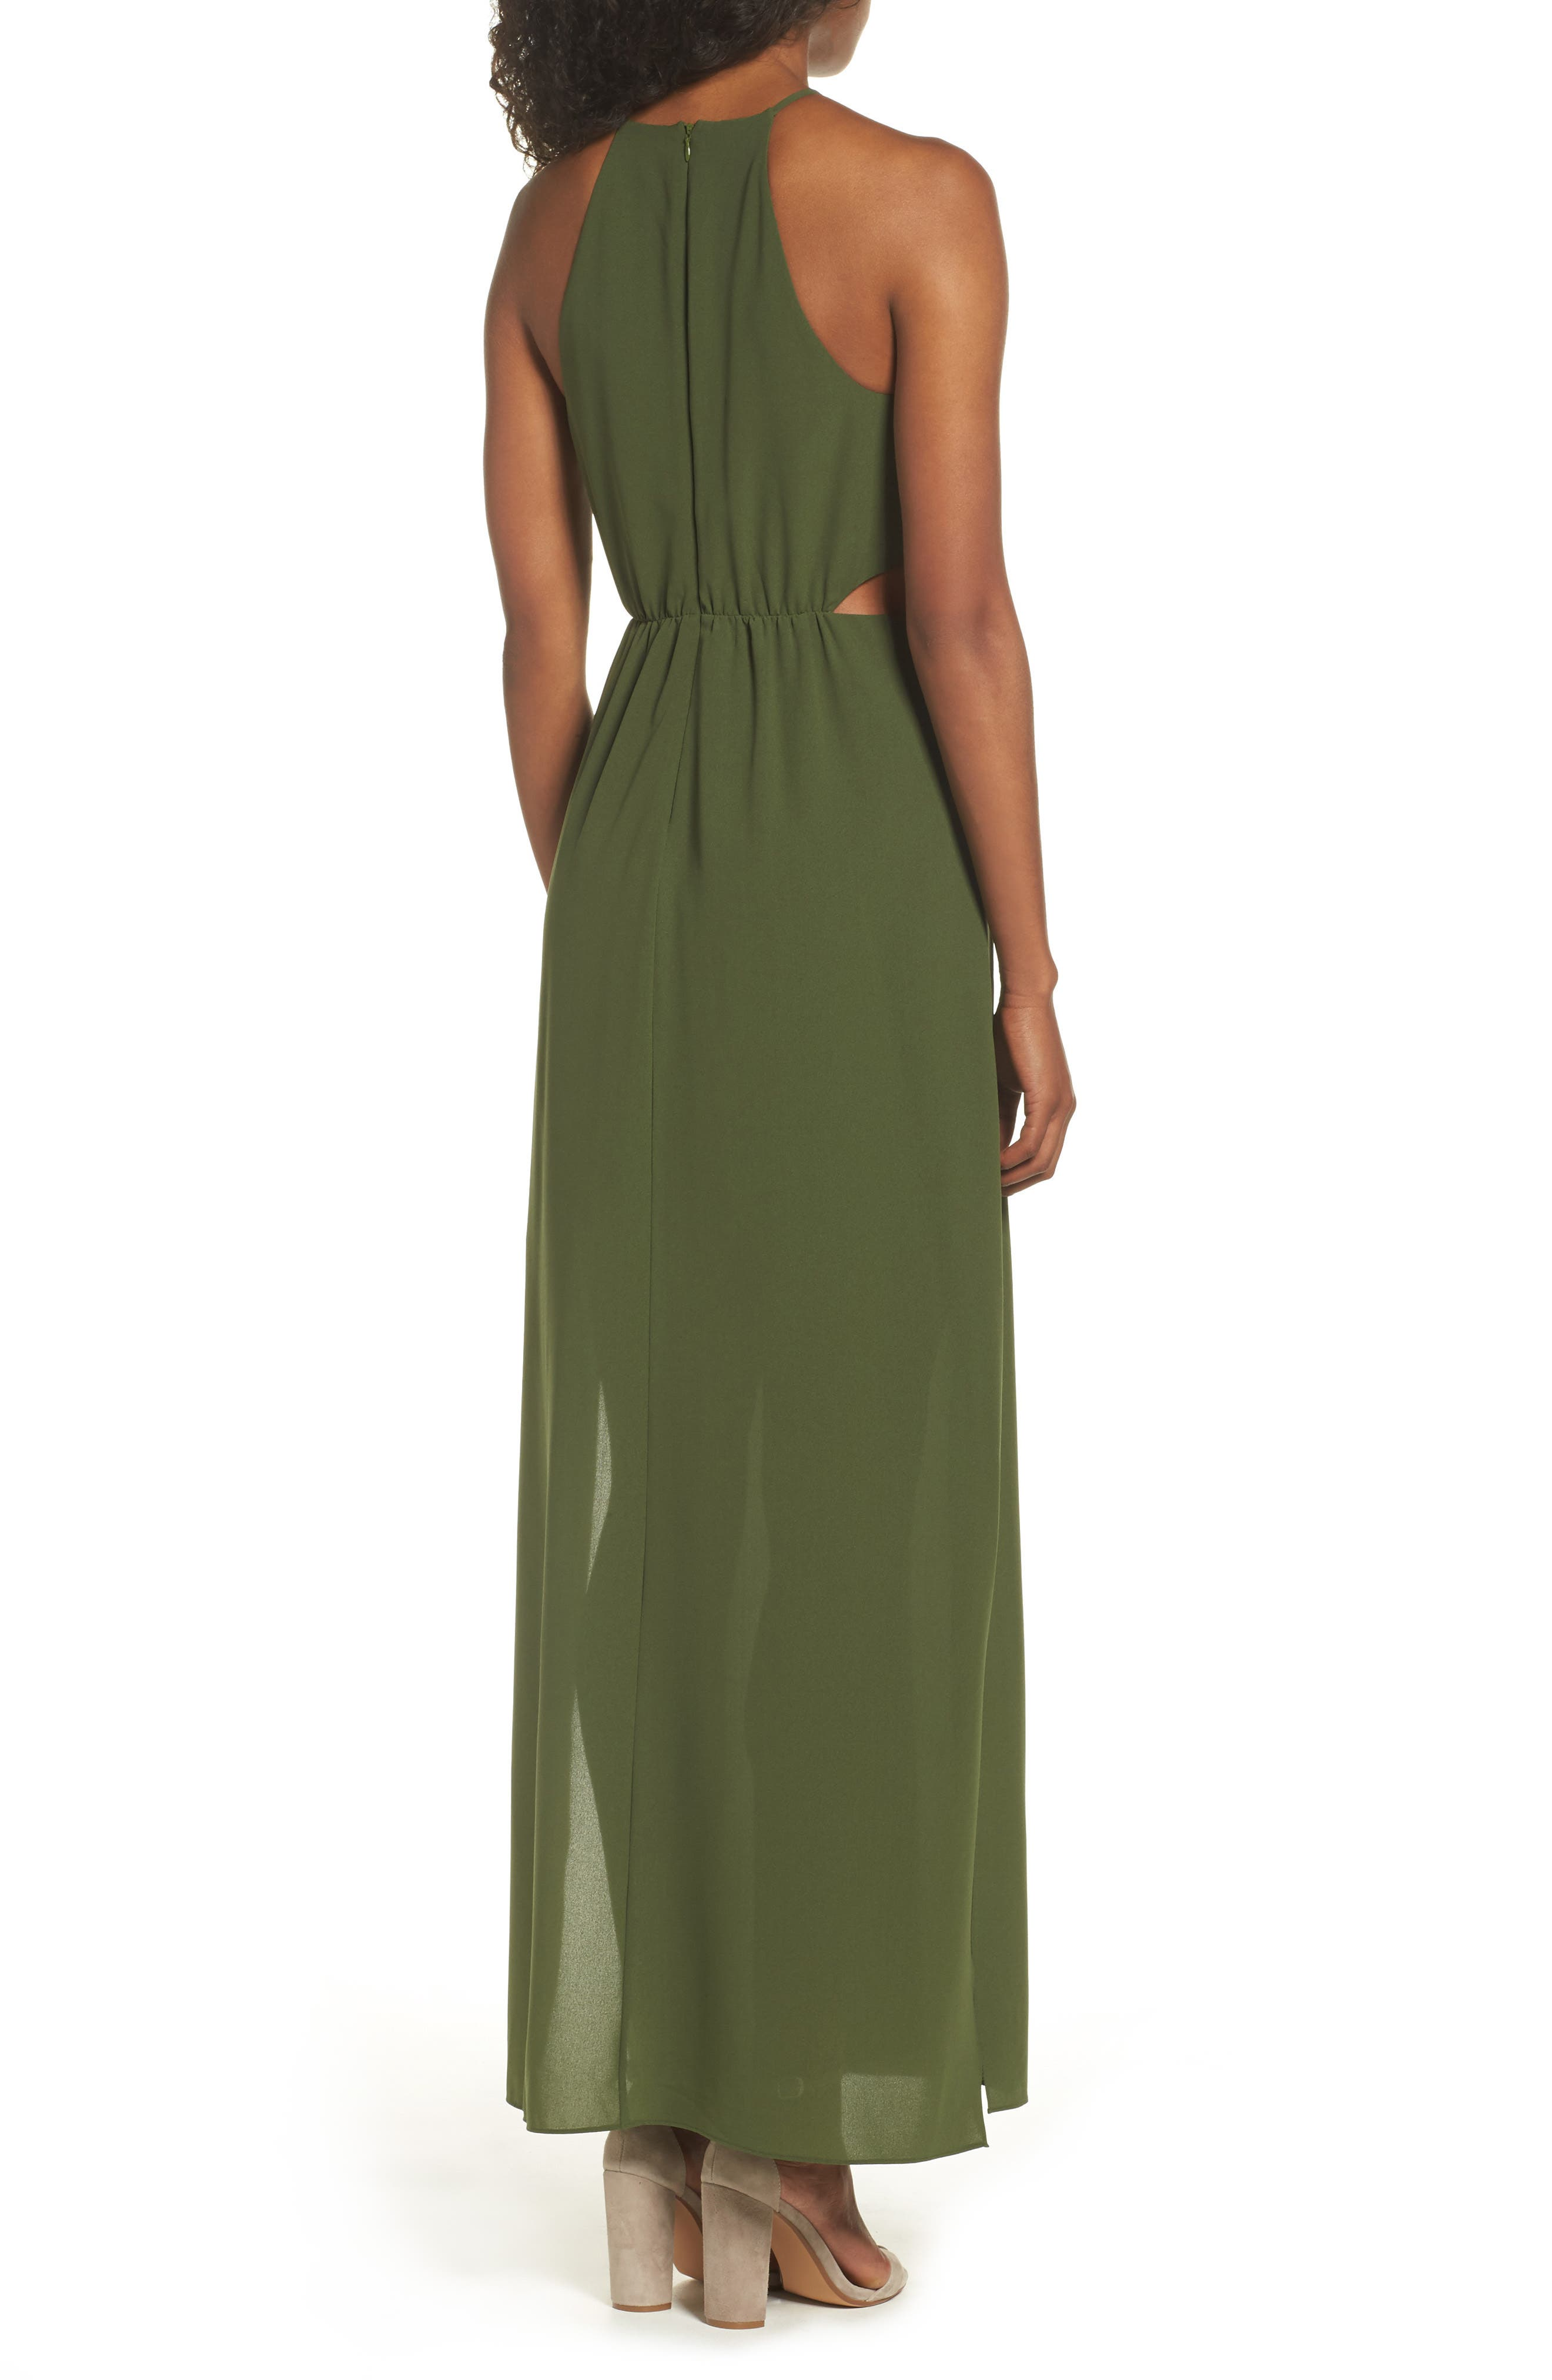 Gazing At The Observatory Maxi Dress,                             Alternate thumbnail 2, color,                             312